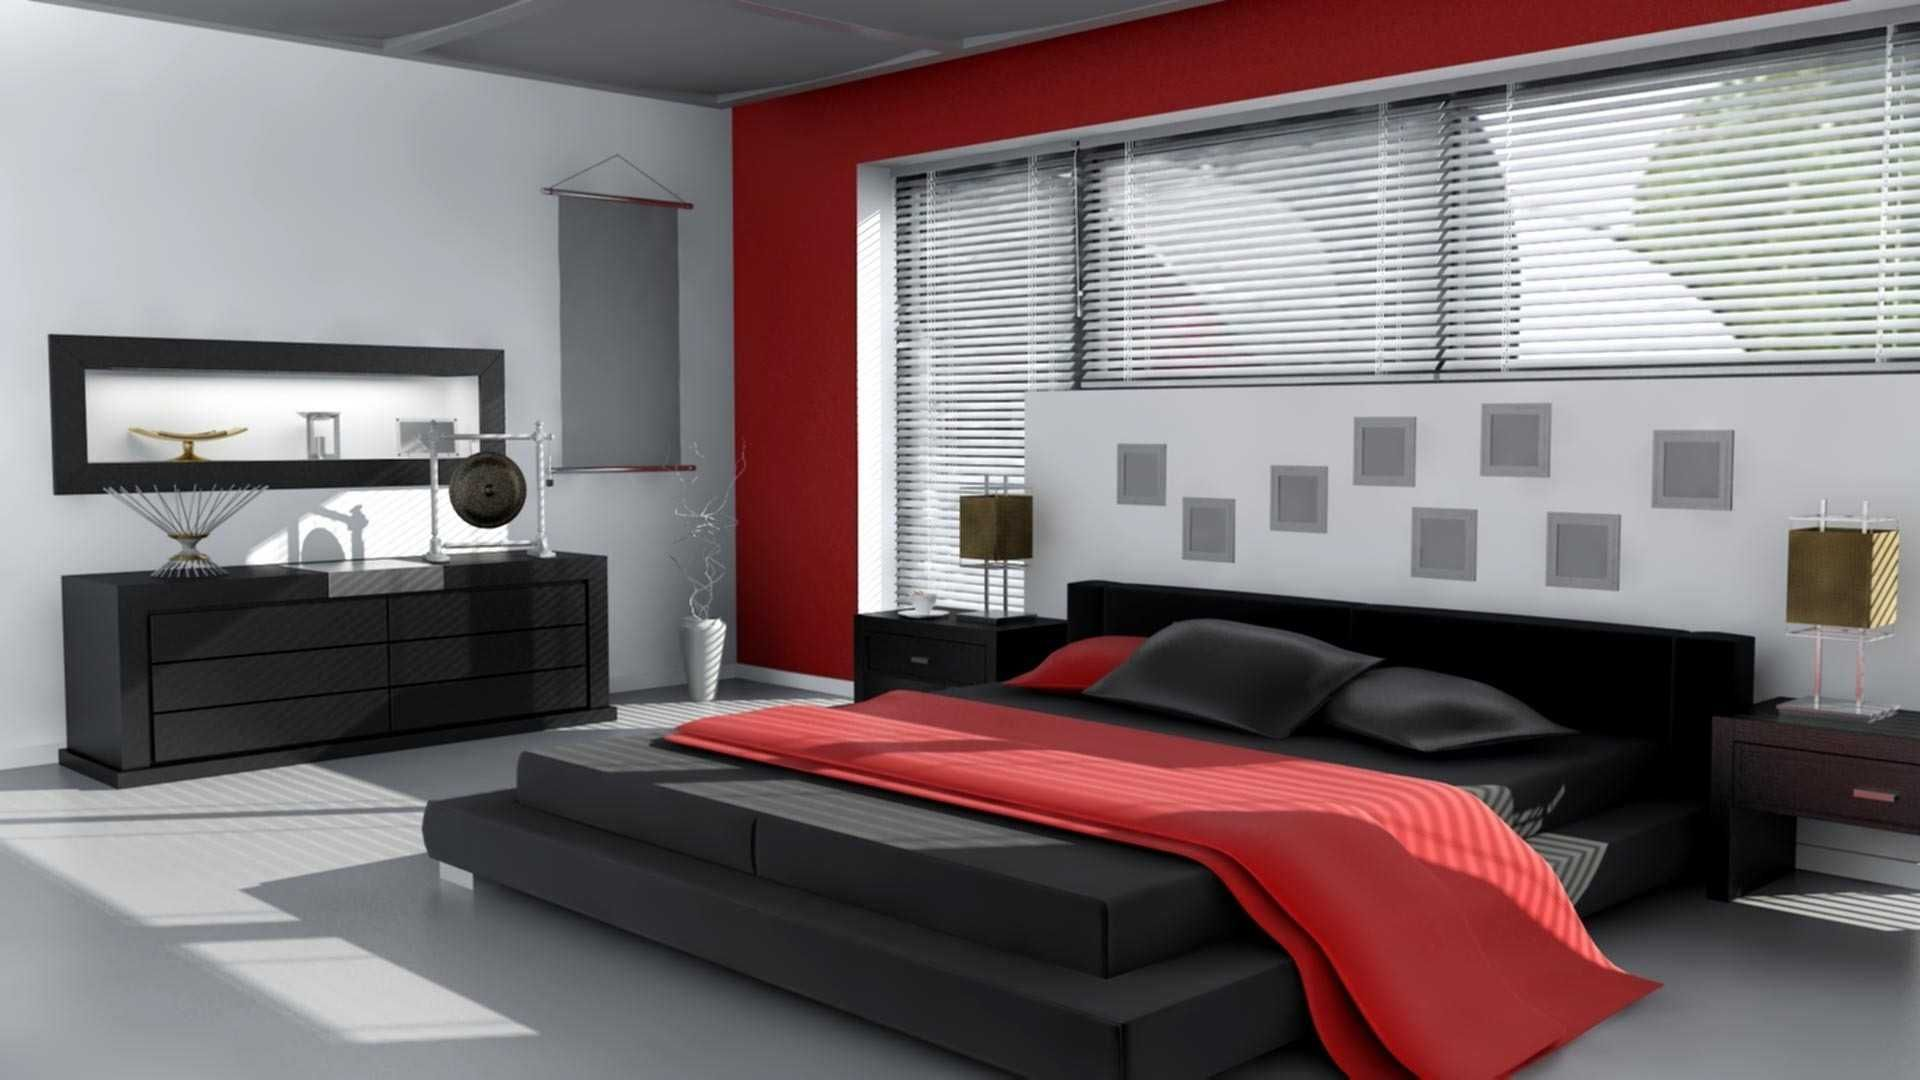 Bedroom Decorating Ideas Red And Gray Bedroom Red Modern Bedroom Decor White Bedroom Decor